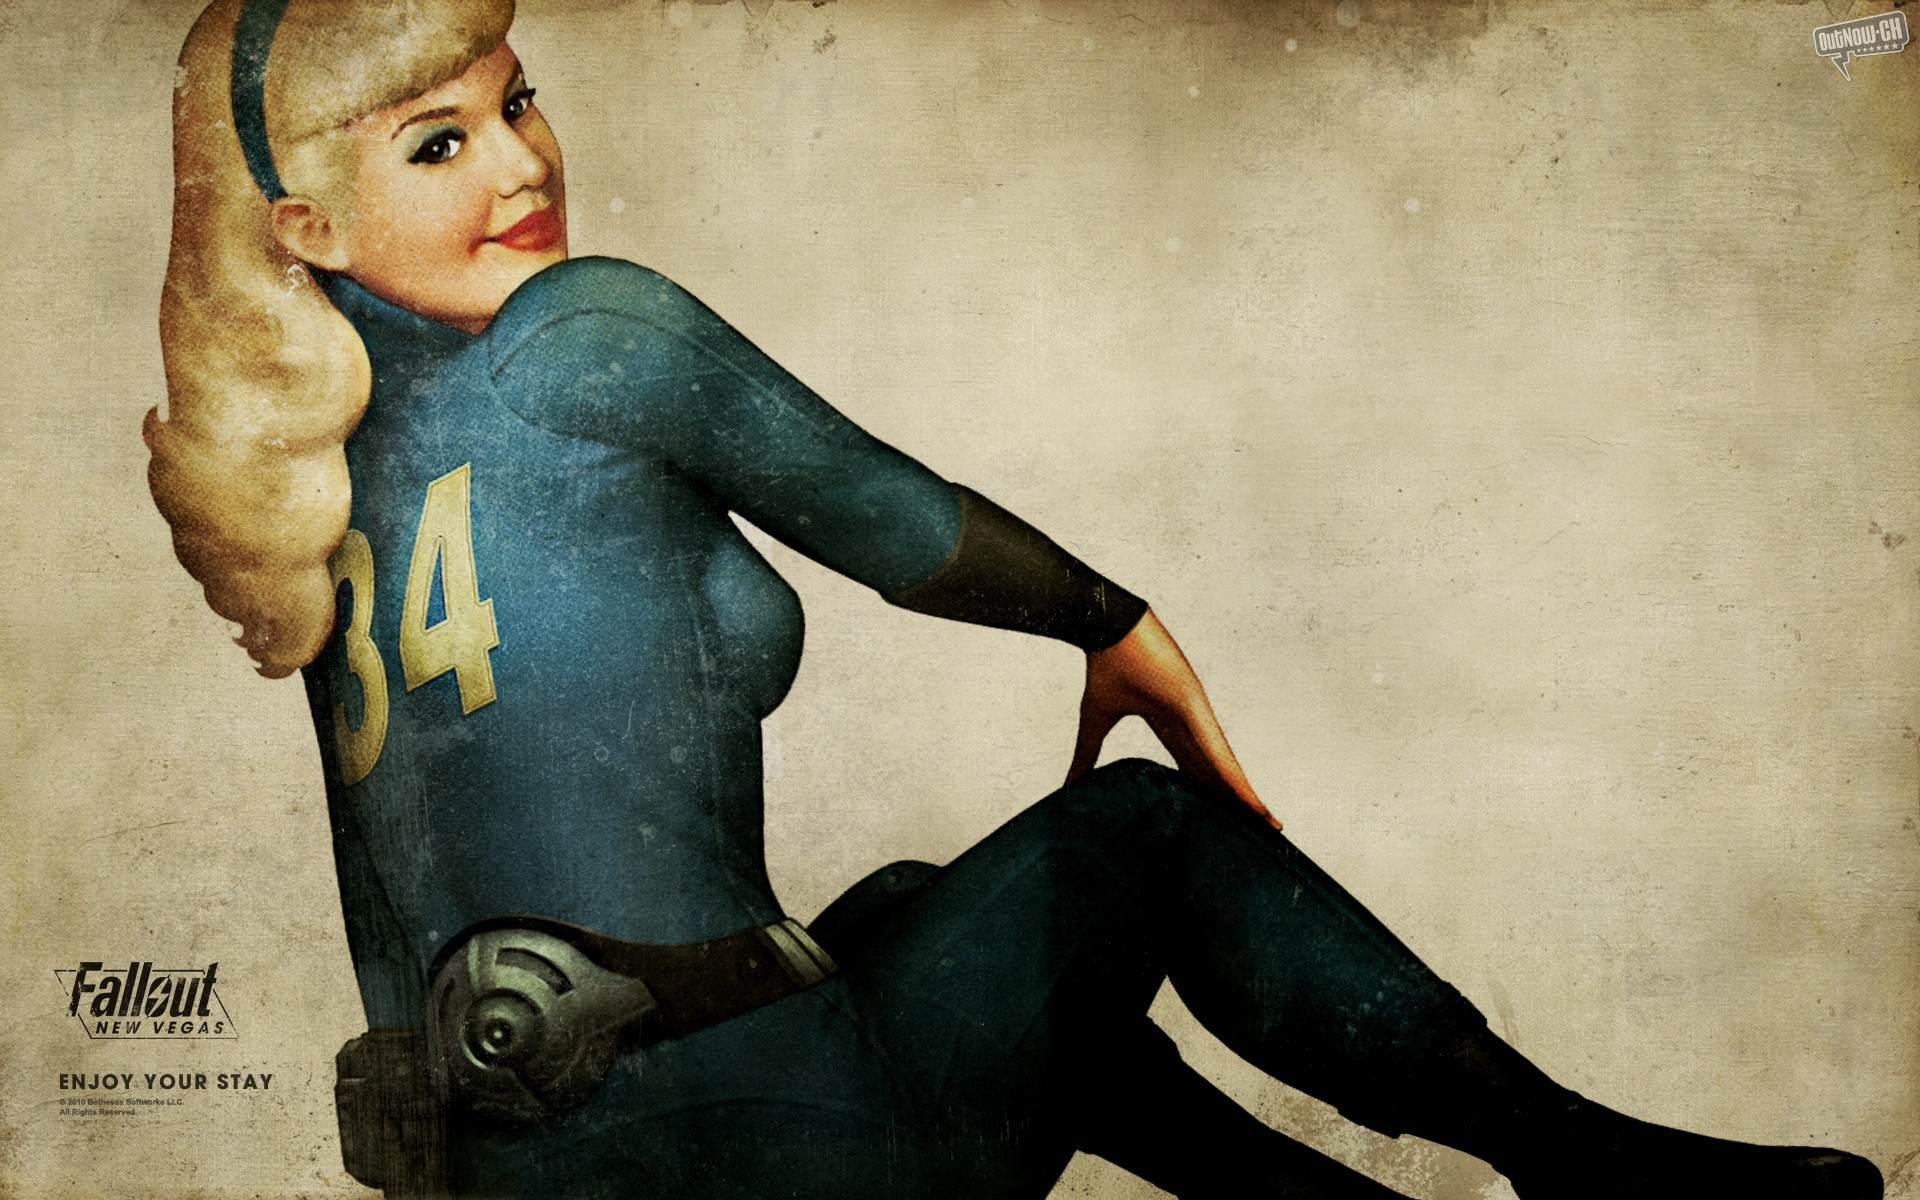 1920x1200  Fallout: New Vegas desktop PC and Mac wallpaper